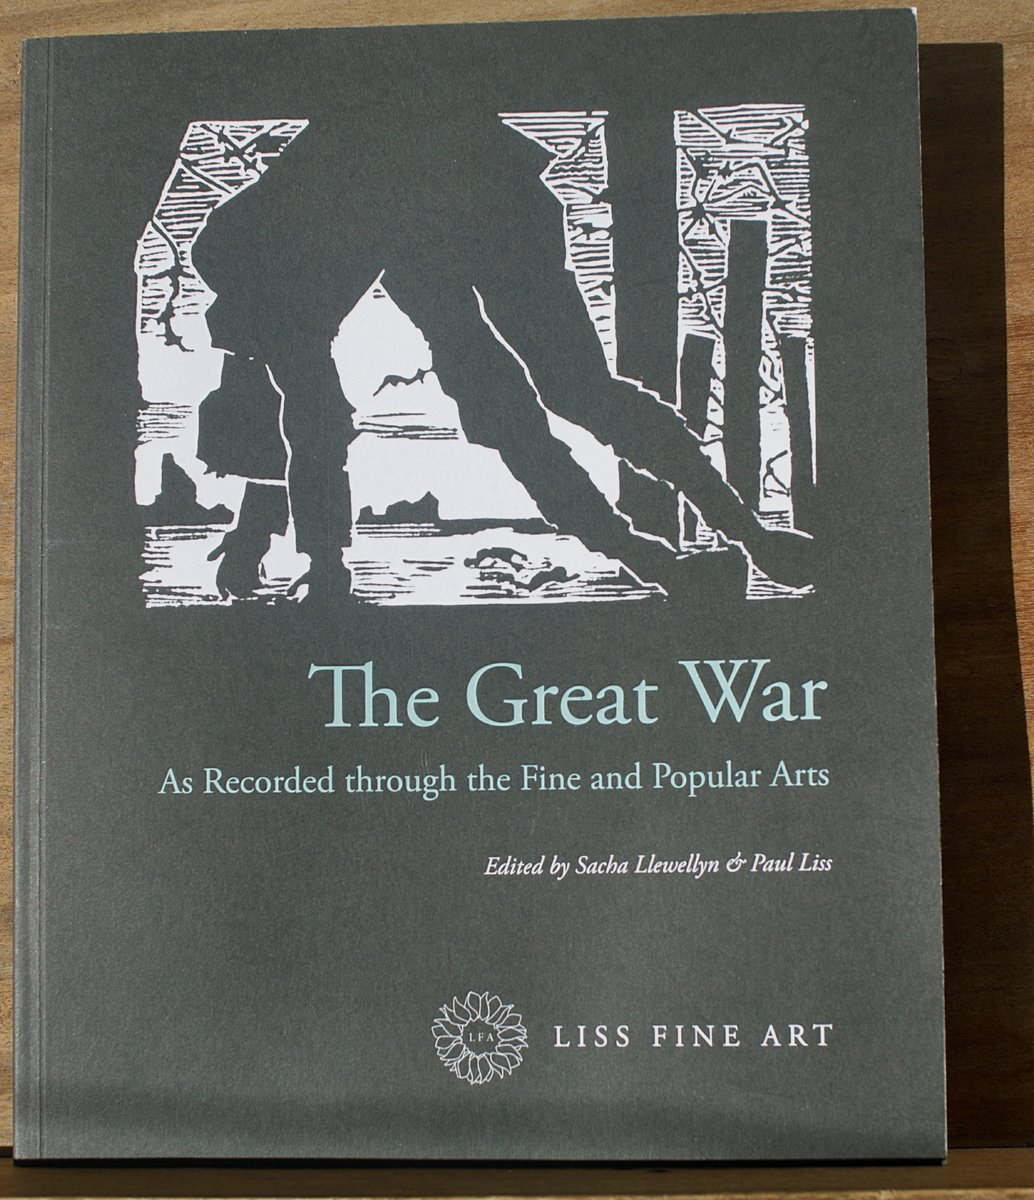 2 The Great War Book Cover